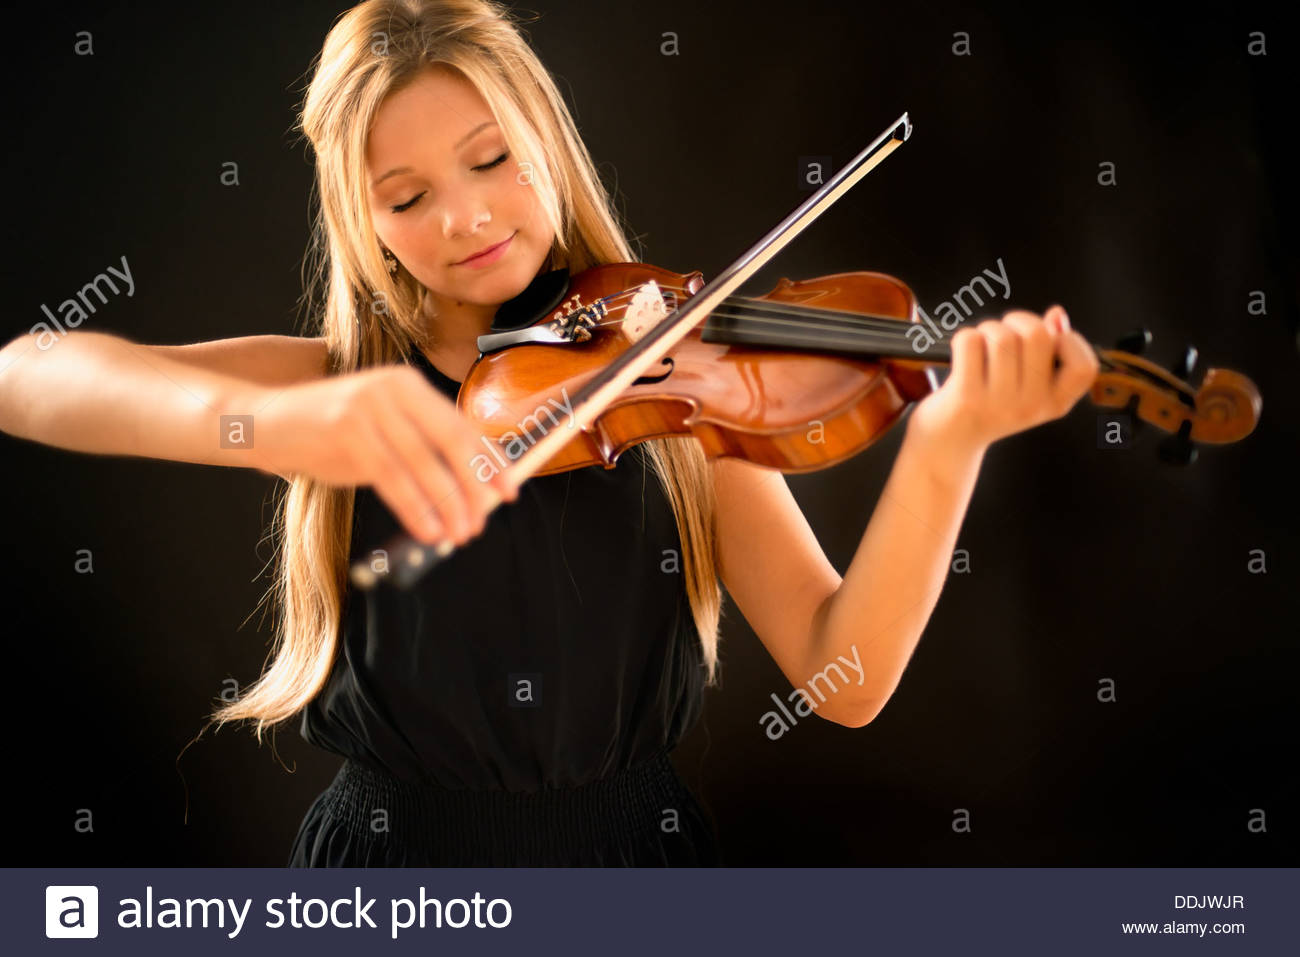 teen girl playing a violin on a black background with her